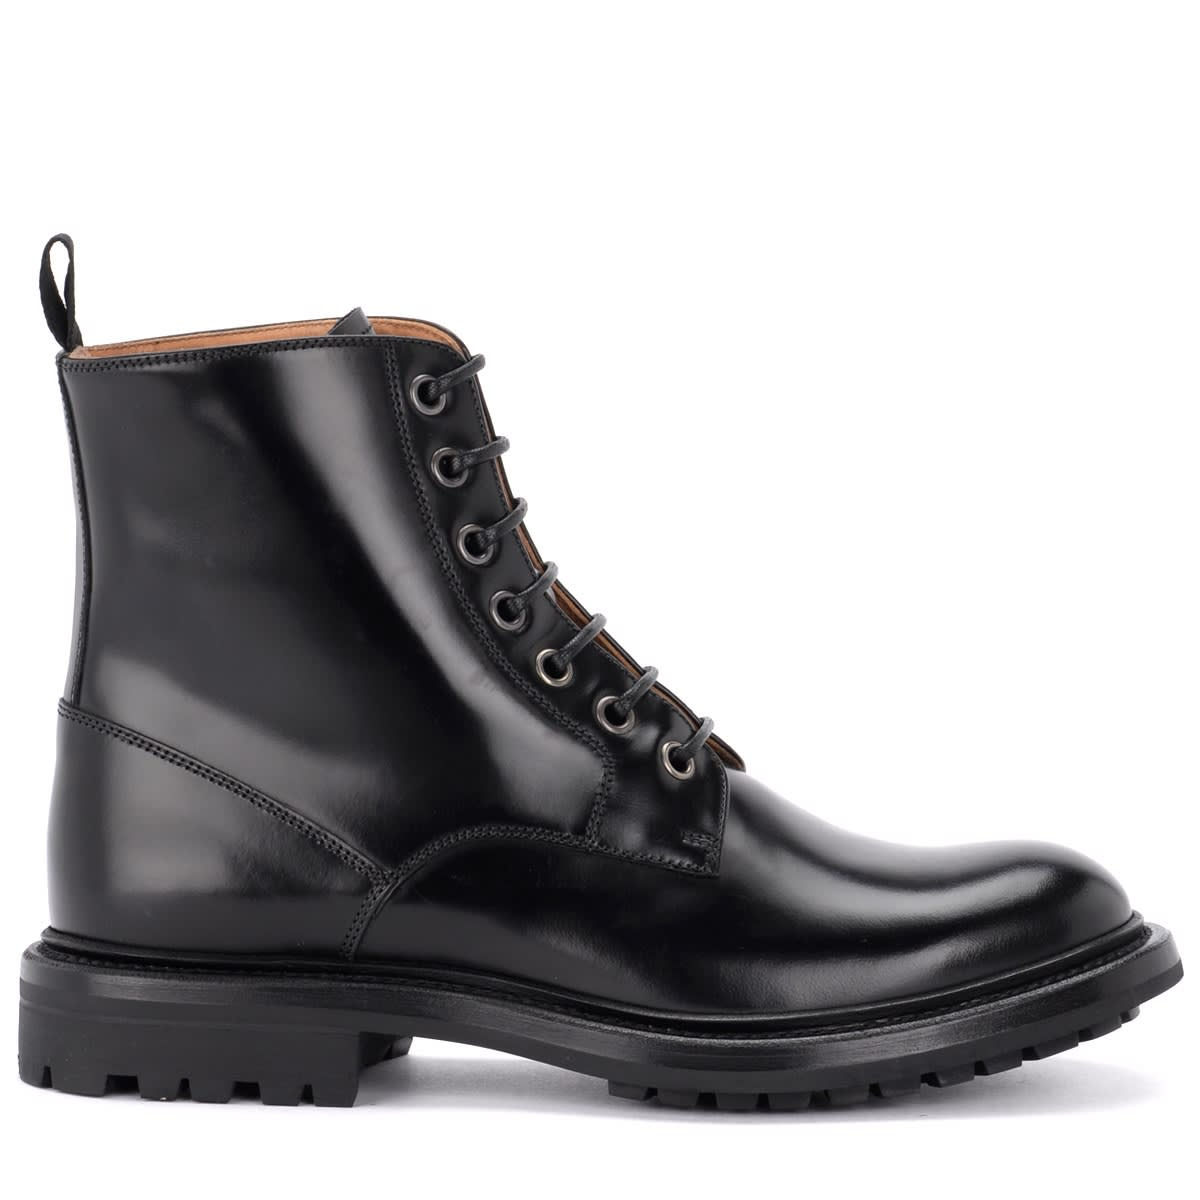 Churchs Nanalah Ankle Boot Made Of Fine Black Calfskin